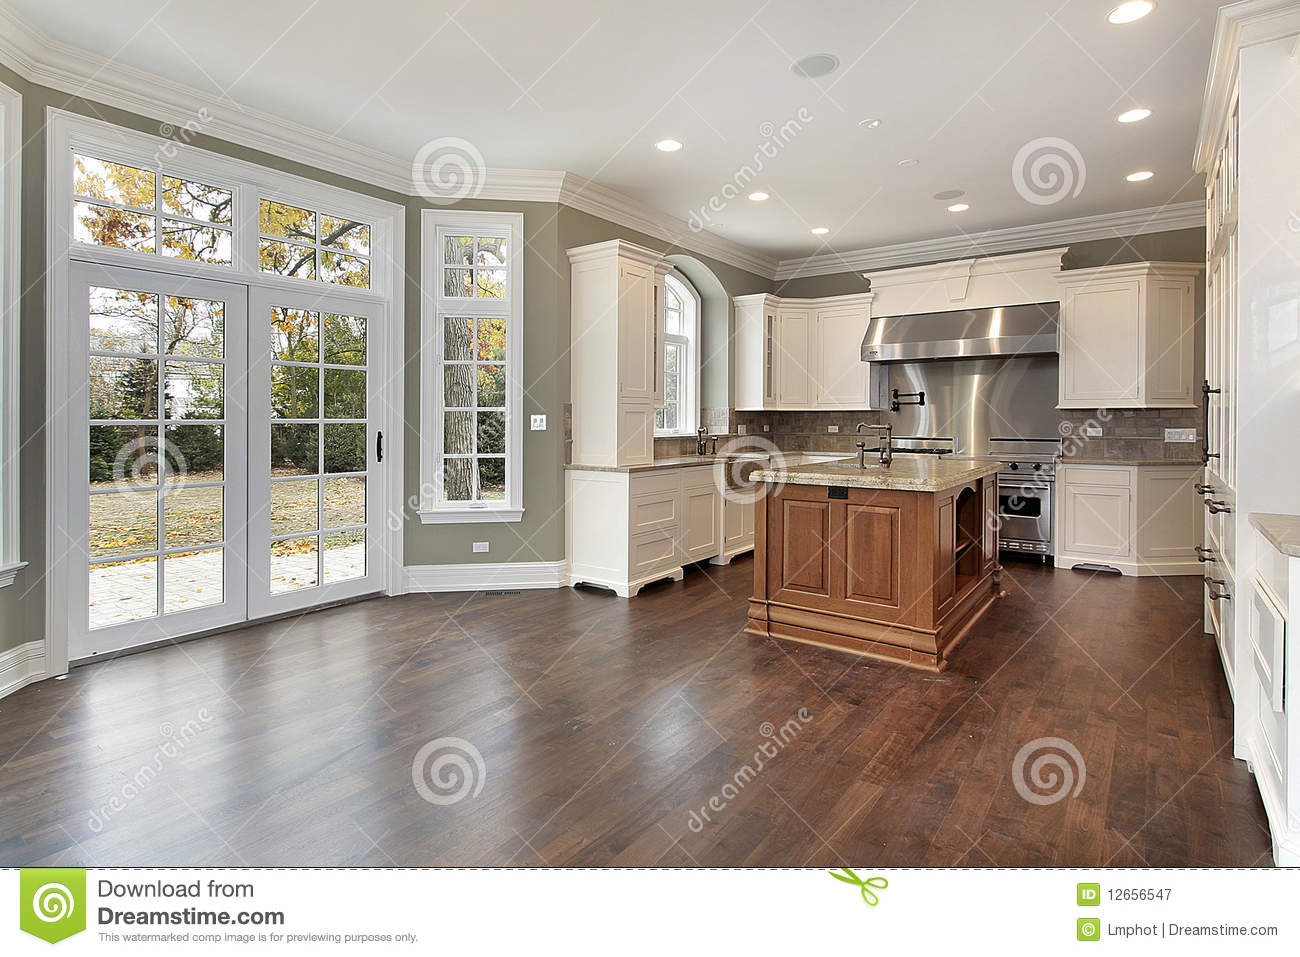 Kitchen in new construction home royalty free stock for Building a new kitchen